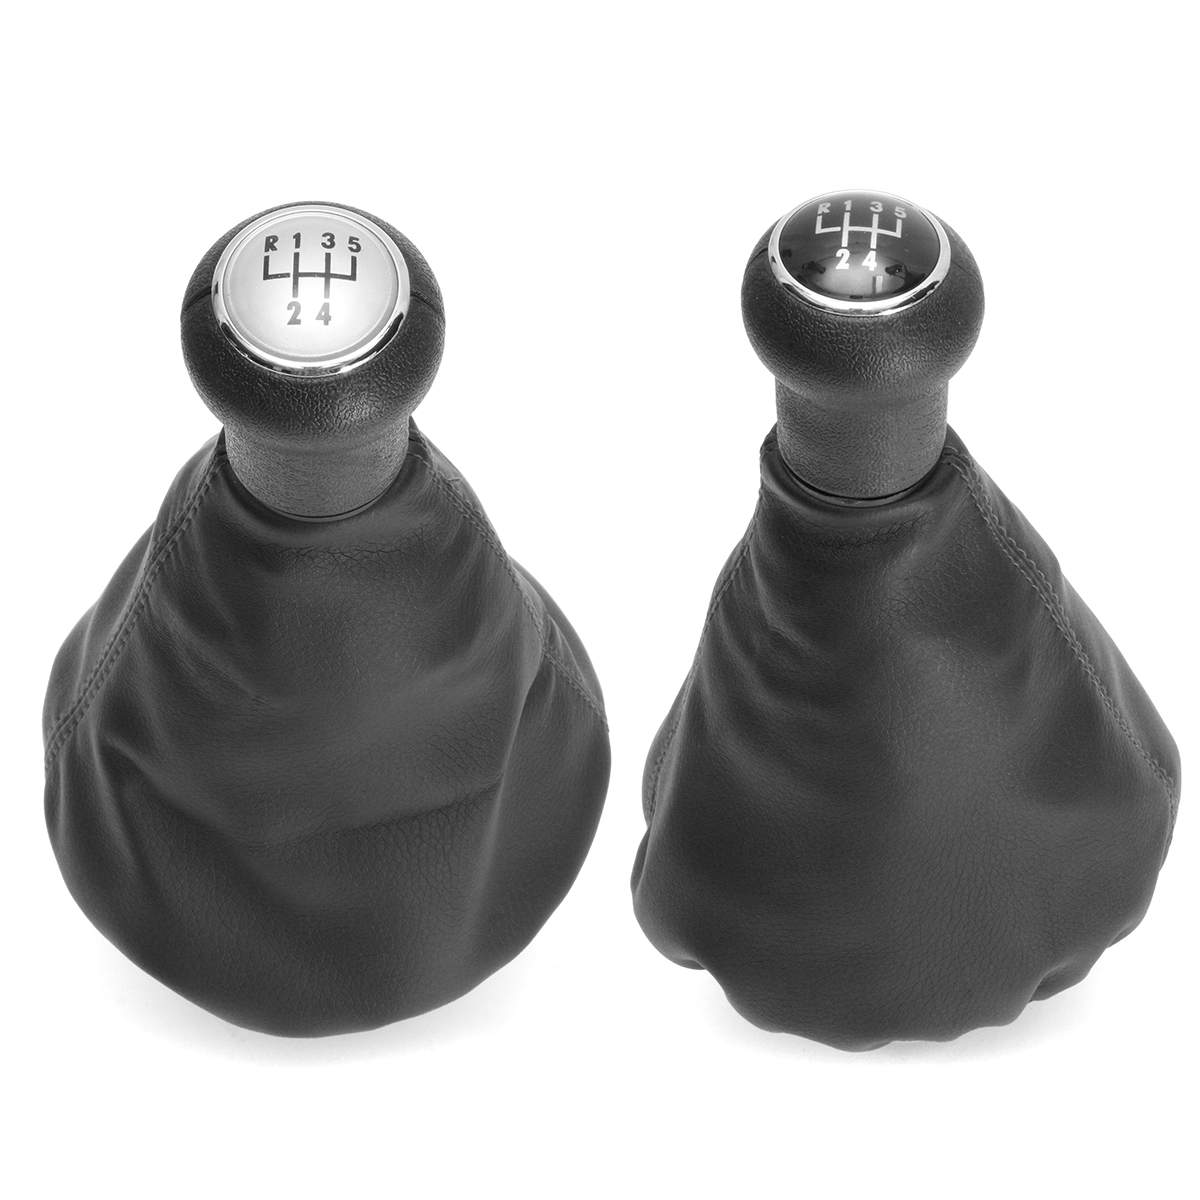 5 Speed Car <font><b>Gear</b></font> <font><b>Shift</b></font> <font><b>Knob</b></font> Collar Leather Gaitor Boot Cover For <font><b>VW</b></font> <font><b>Golf</b></font> <font><b>3</b></font> MK3 Vento 1992 1993 1997 1995 1996 1997 1998 image